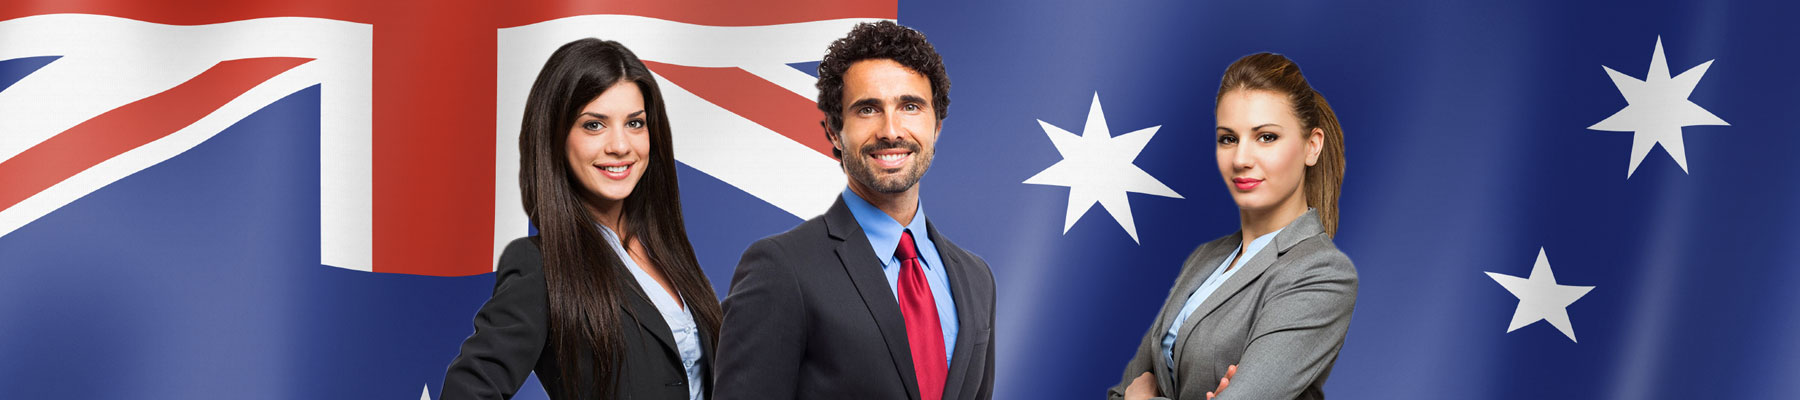 Top 5 Tips to Secure PR in Australia for International Students